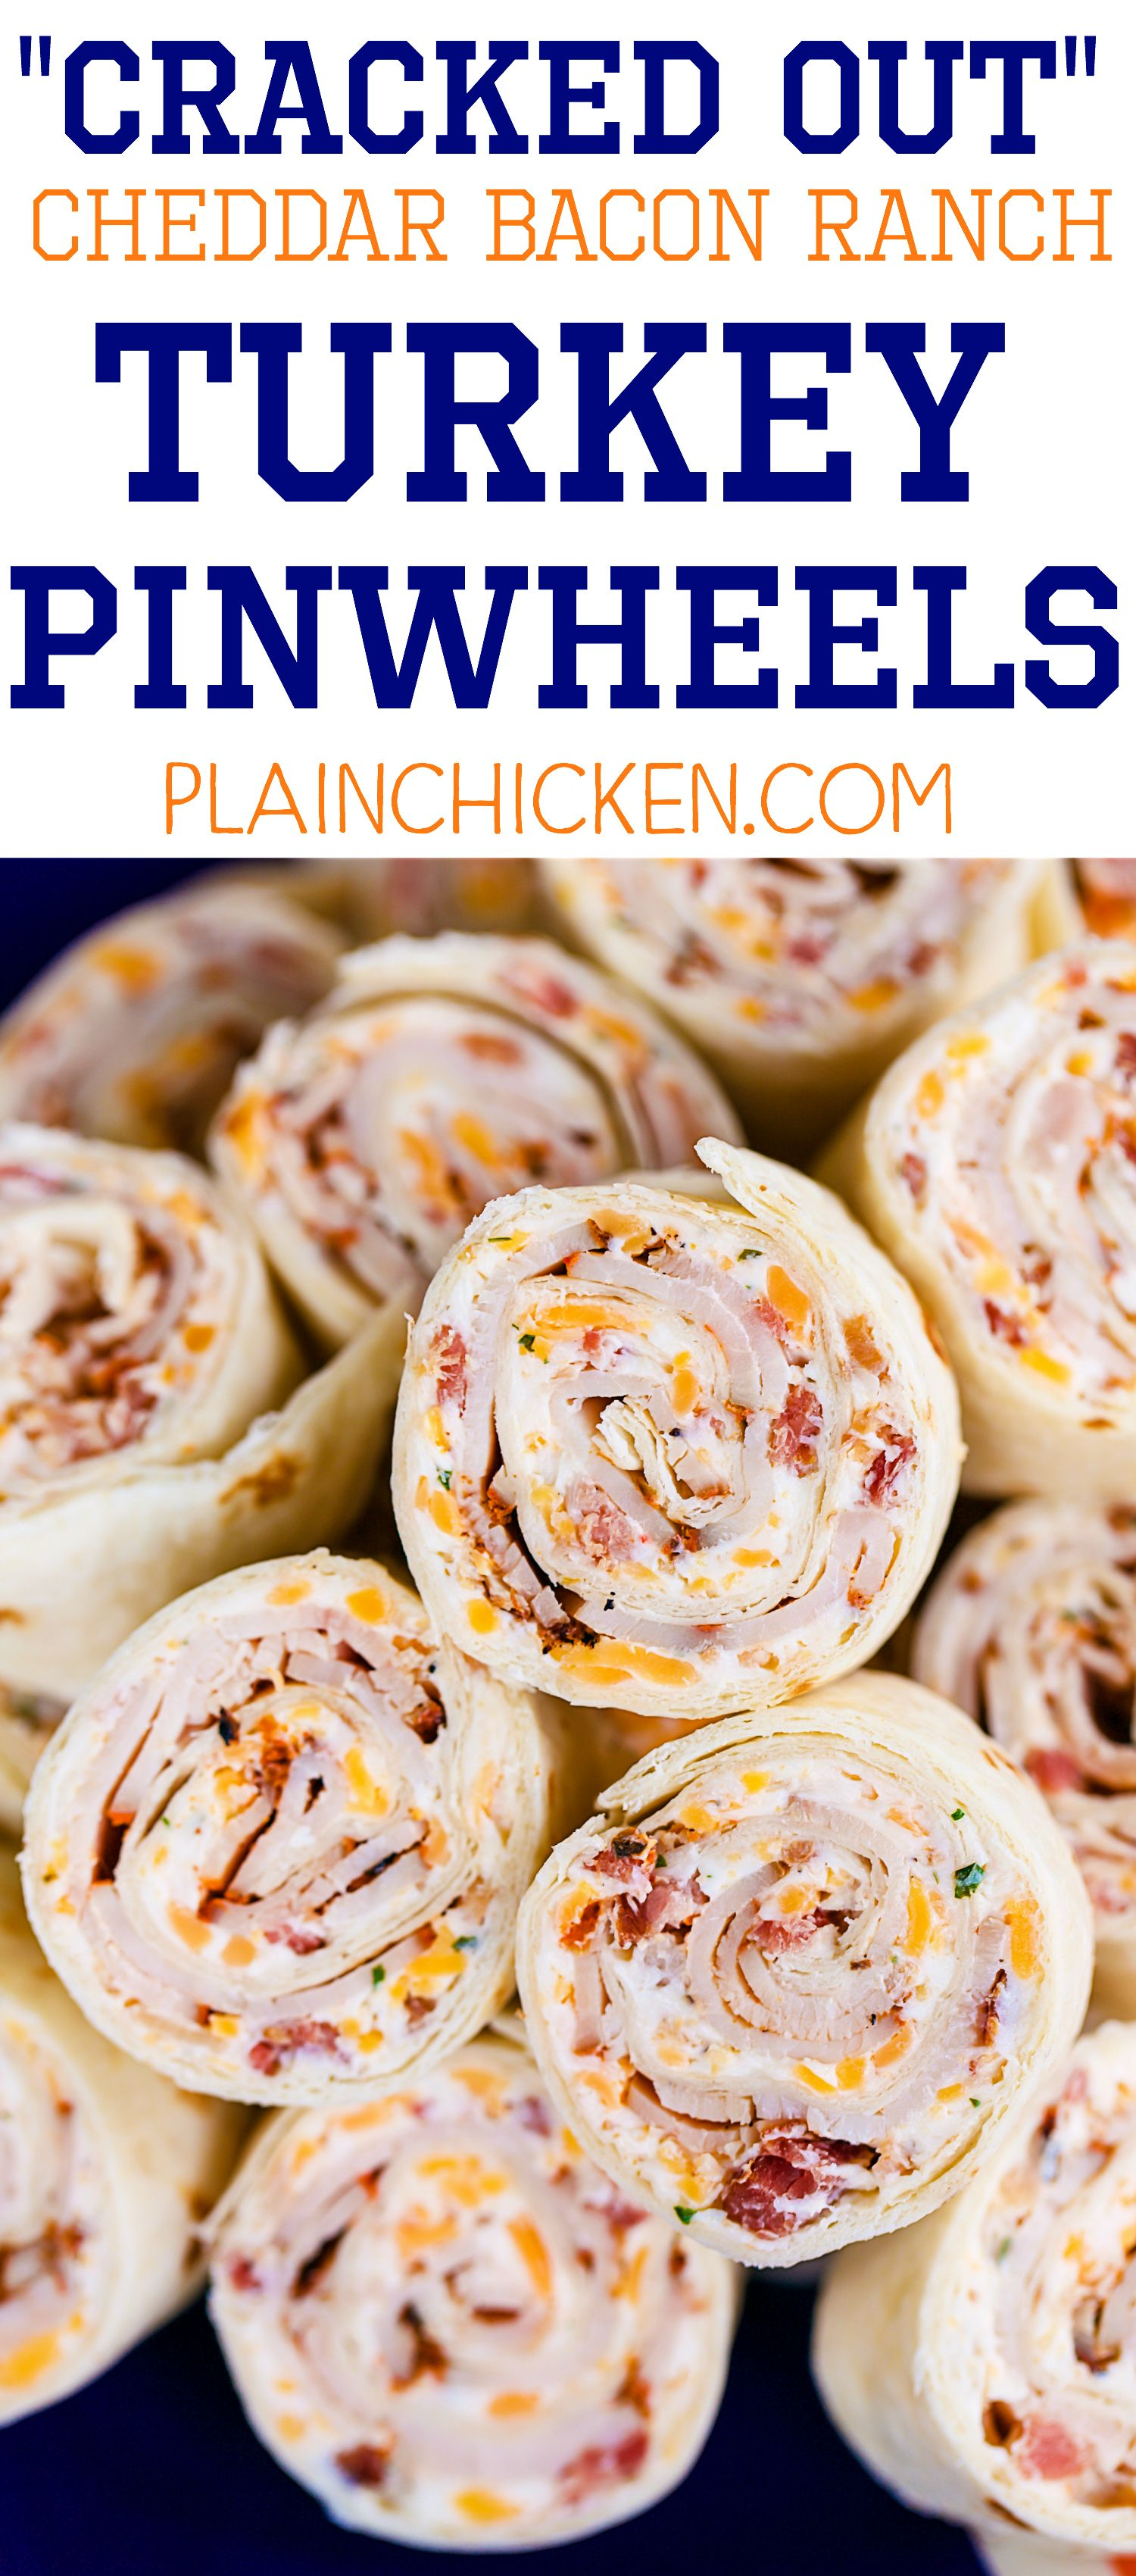 Cracked Out Turkey Pinwheels - I am ADDICTED to these sandwiches! Cream cheese, cheddar, bacon, Ranch and turkey wrapped in a tortilla. Can make ahead of time and refrigerate until ready to eat. Perfect for parties and tailgating!! #tailgatefoodmakeahead